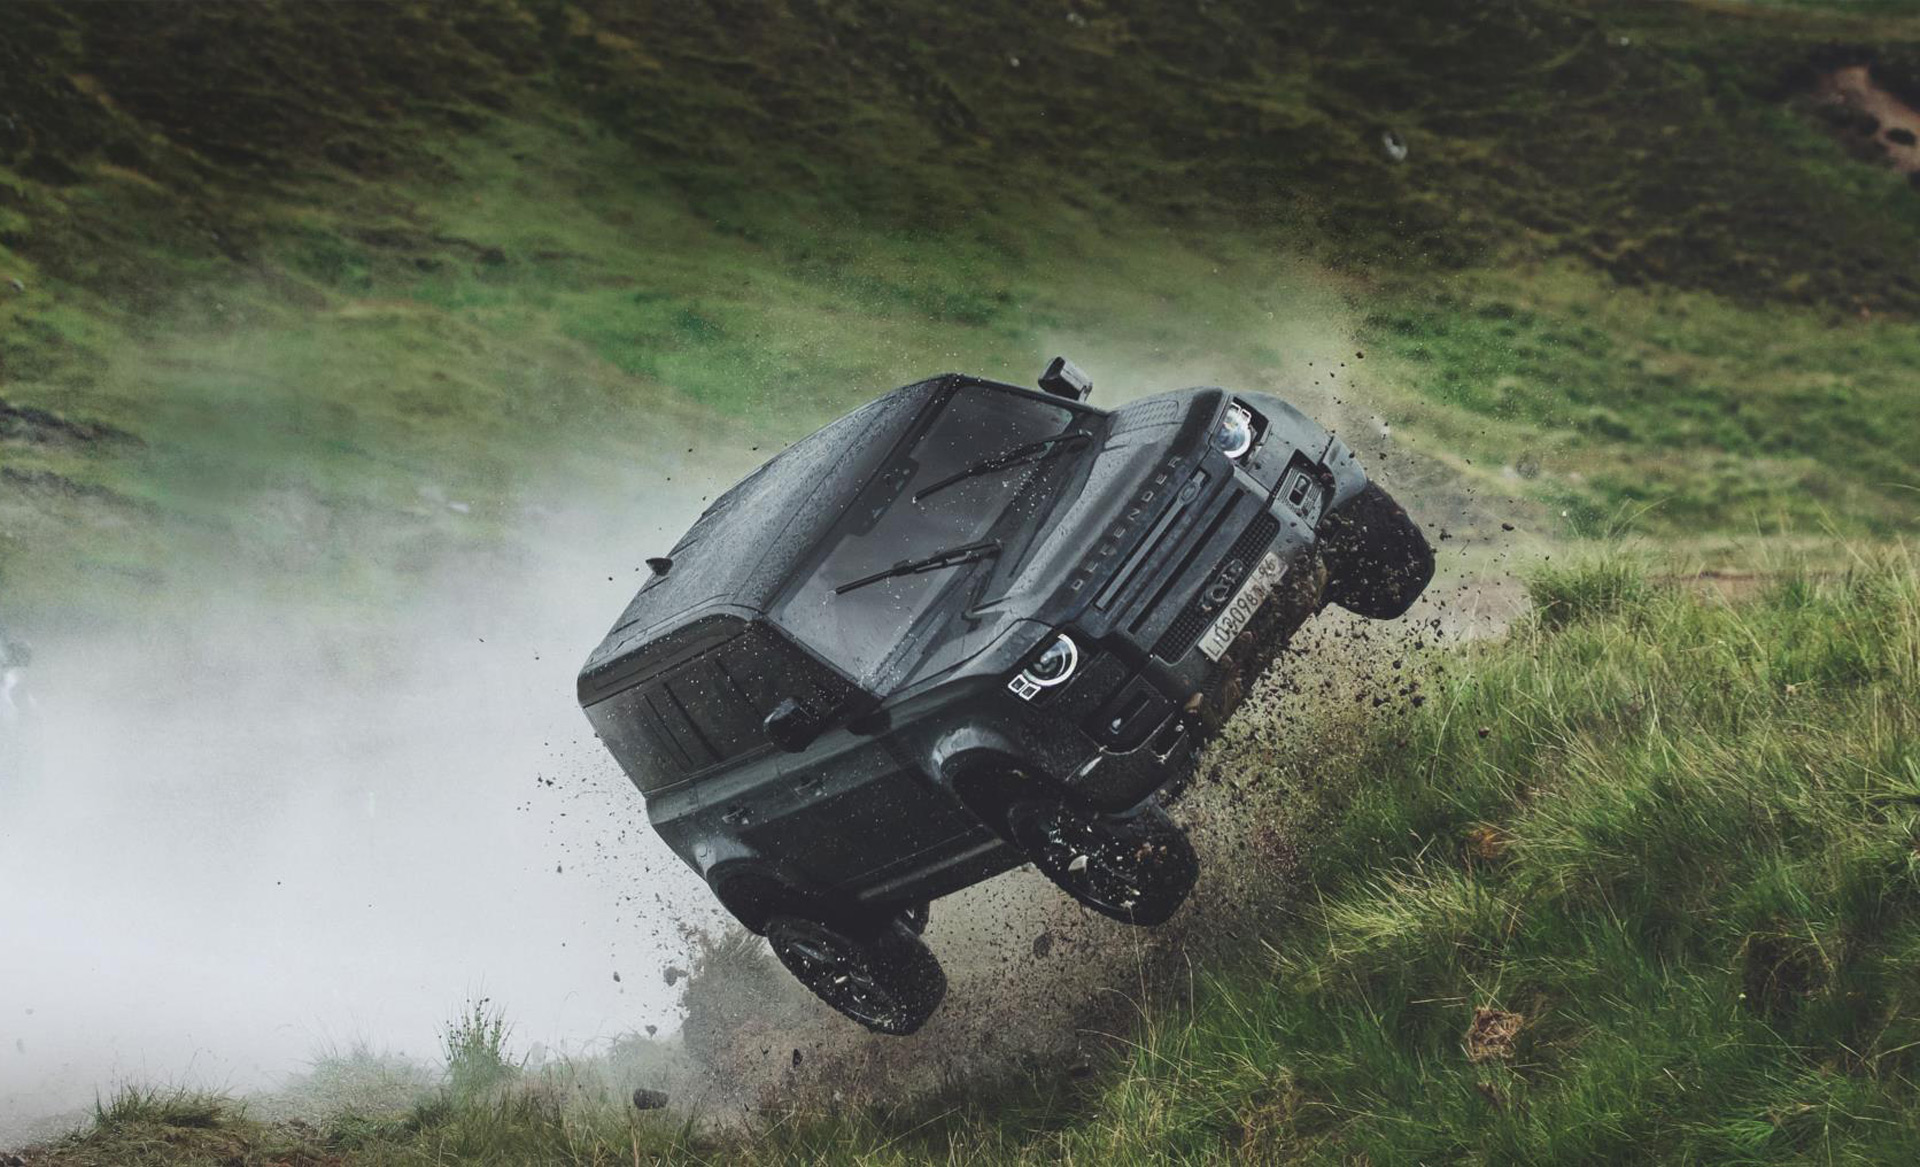 Land Rover demonstrates toughness of new Defender on James Bond movie set